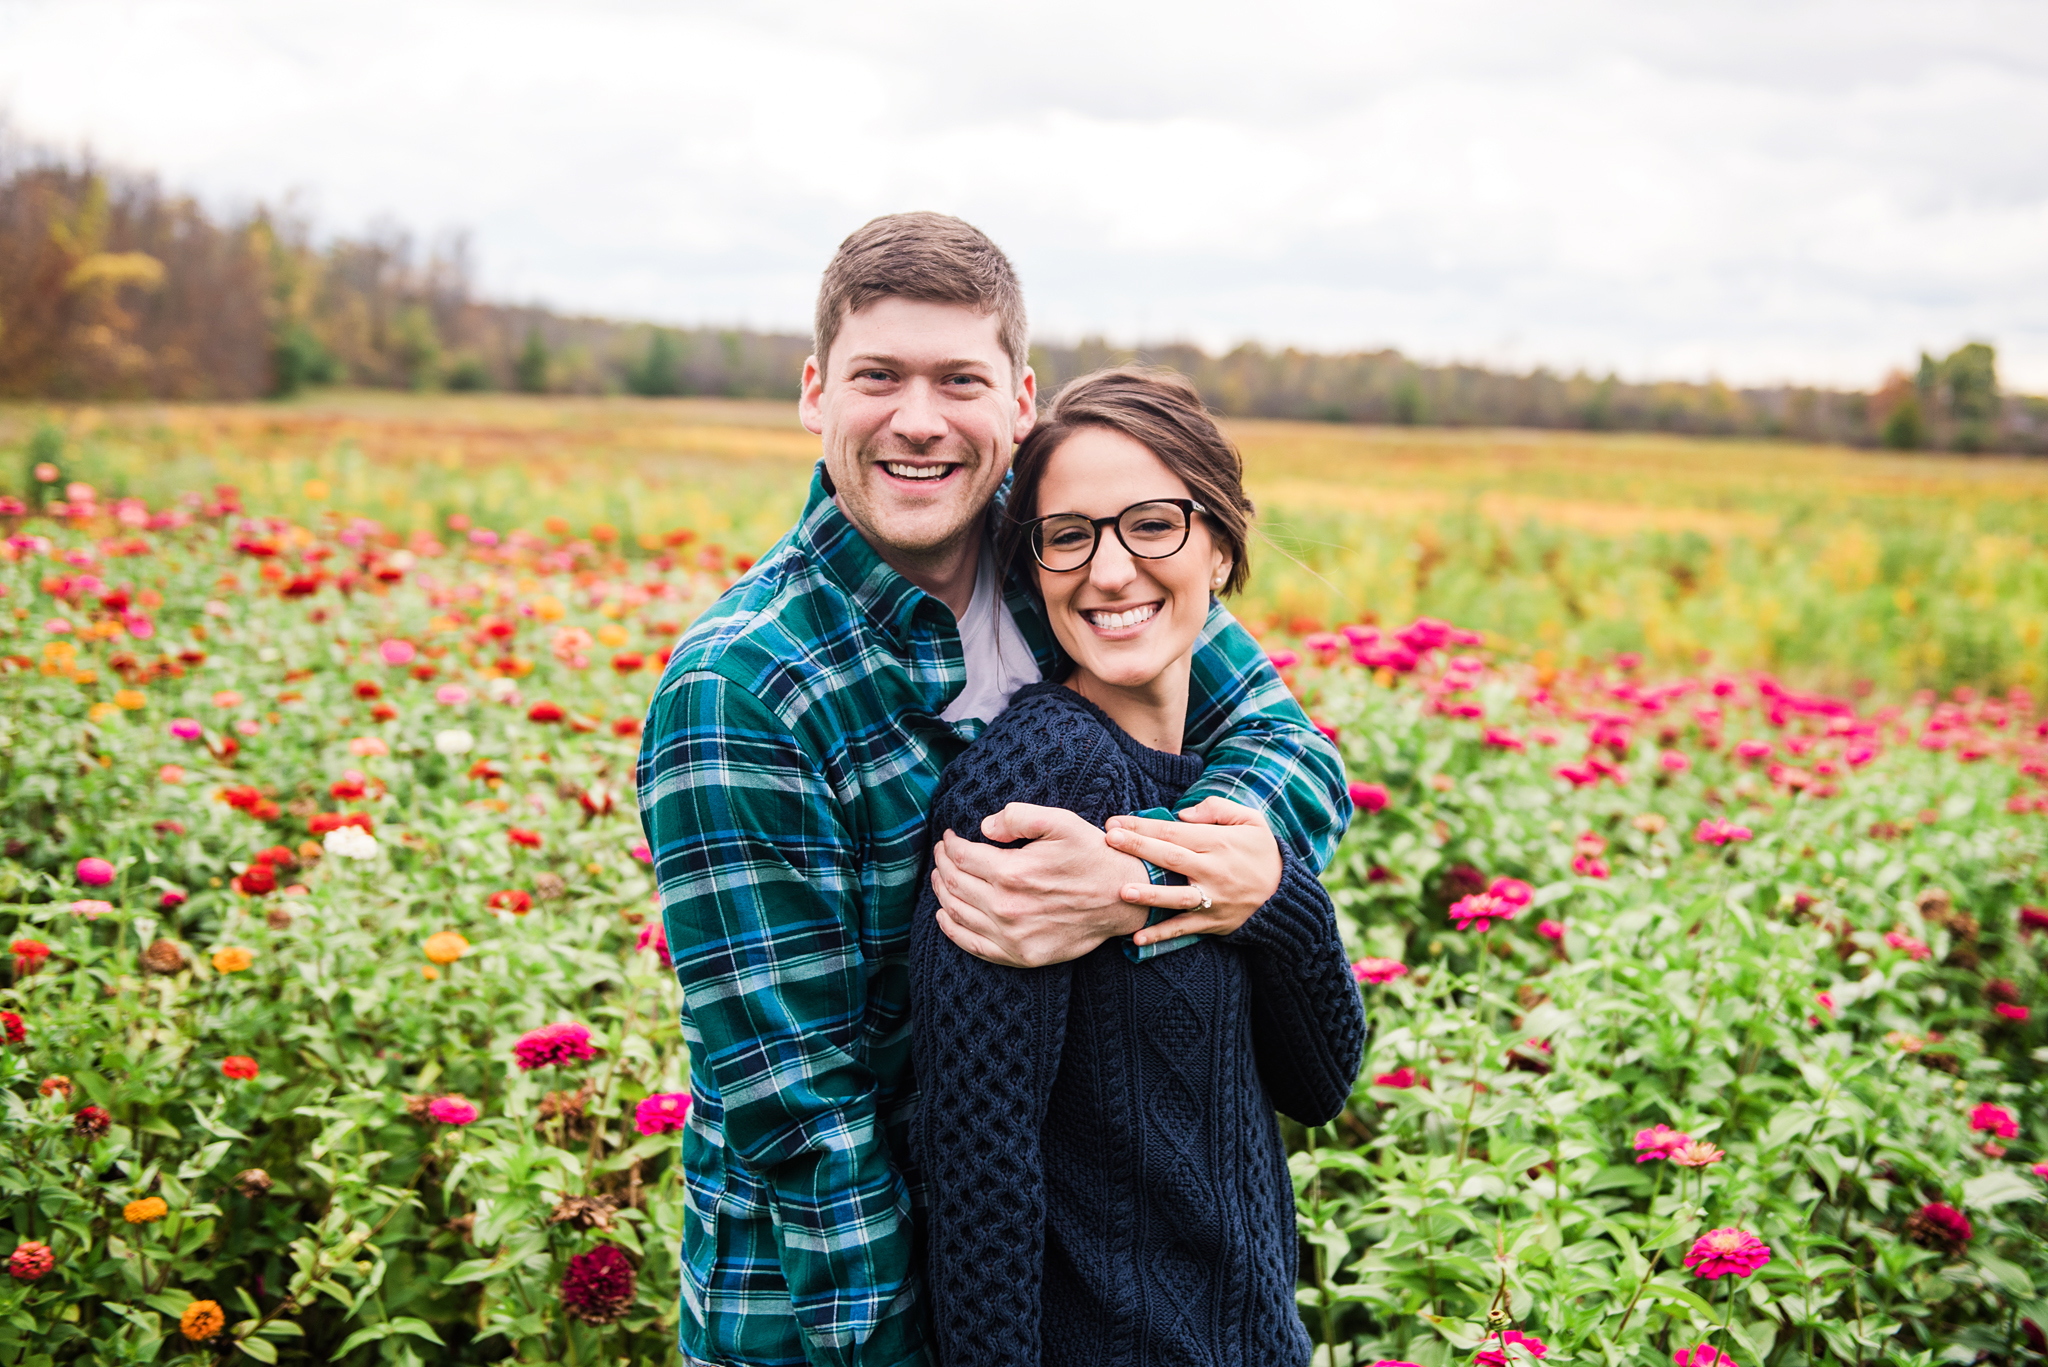 Hurd_Orchards_Rochester_Engagement_Session_JILL_STUDIO_Rochester_NY_Photographer_DSC_1957.jpg